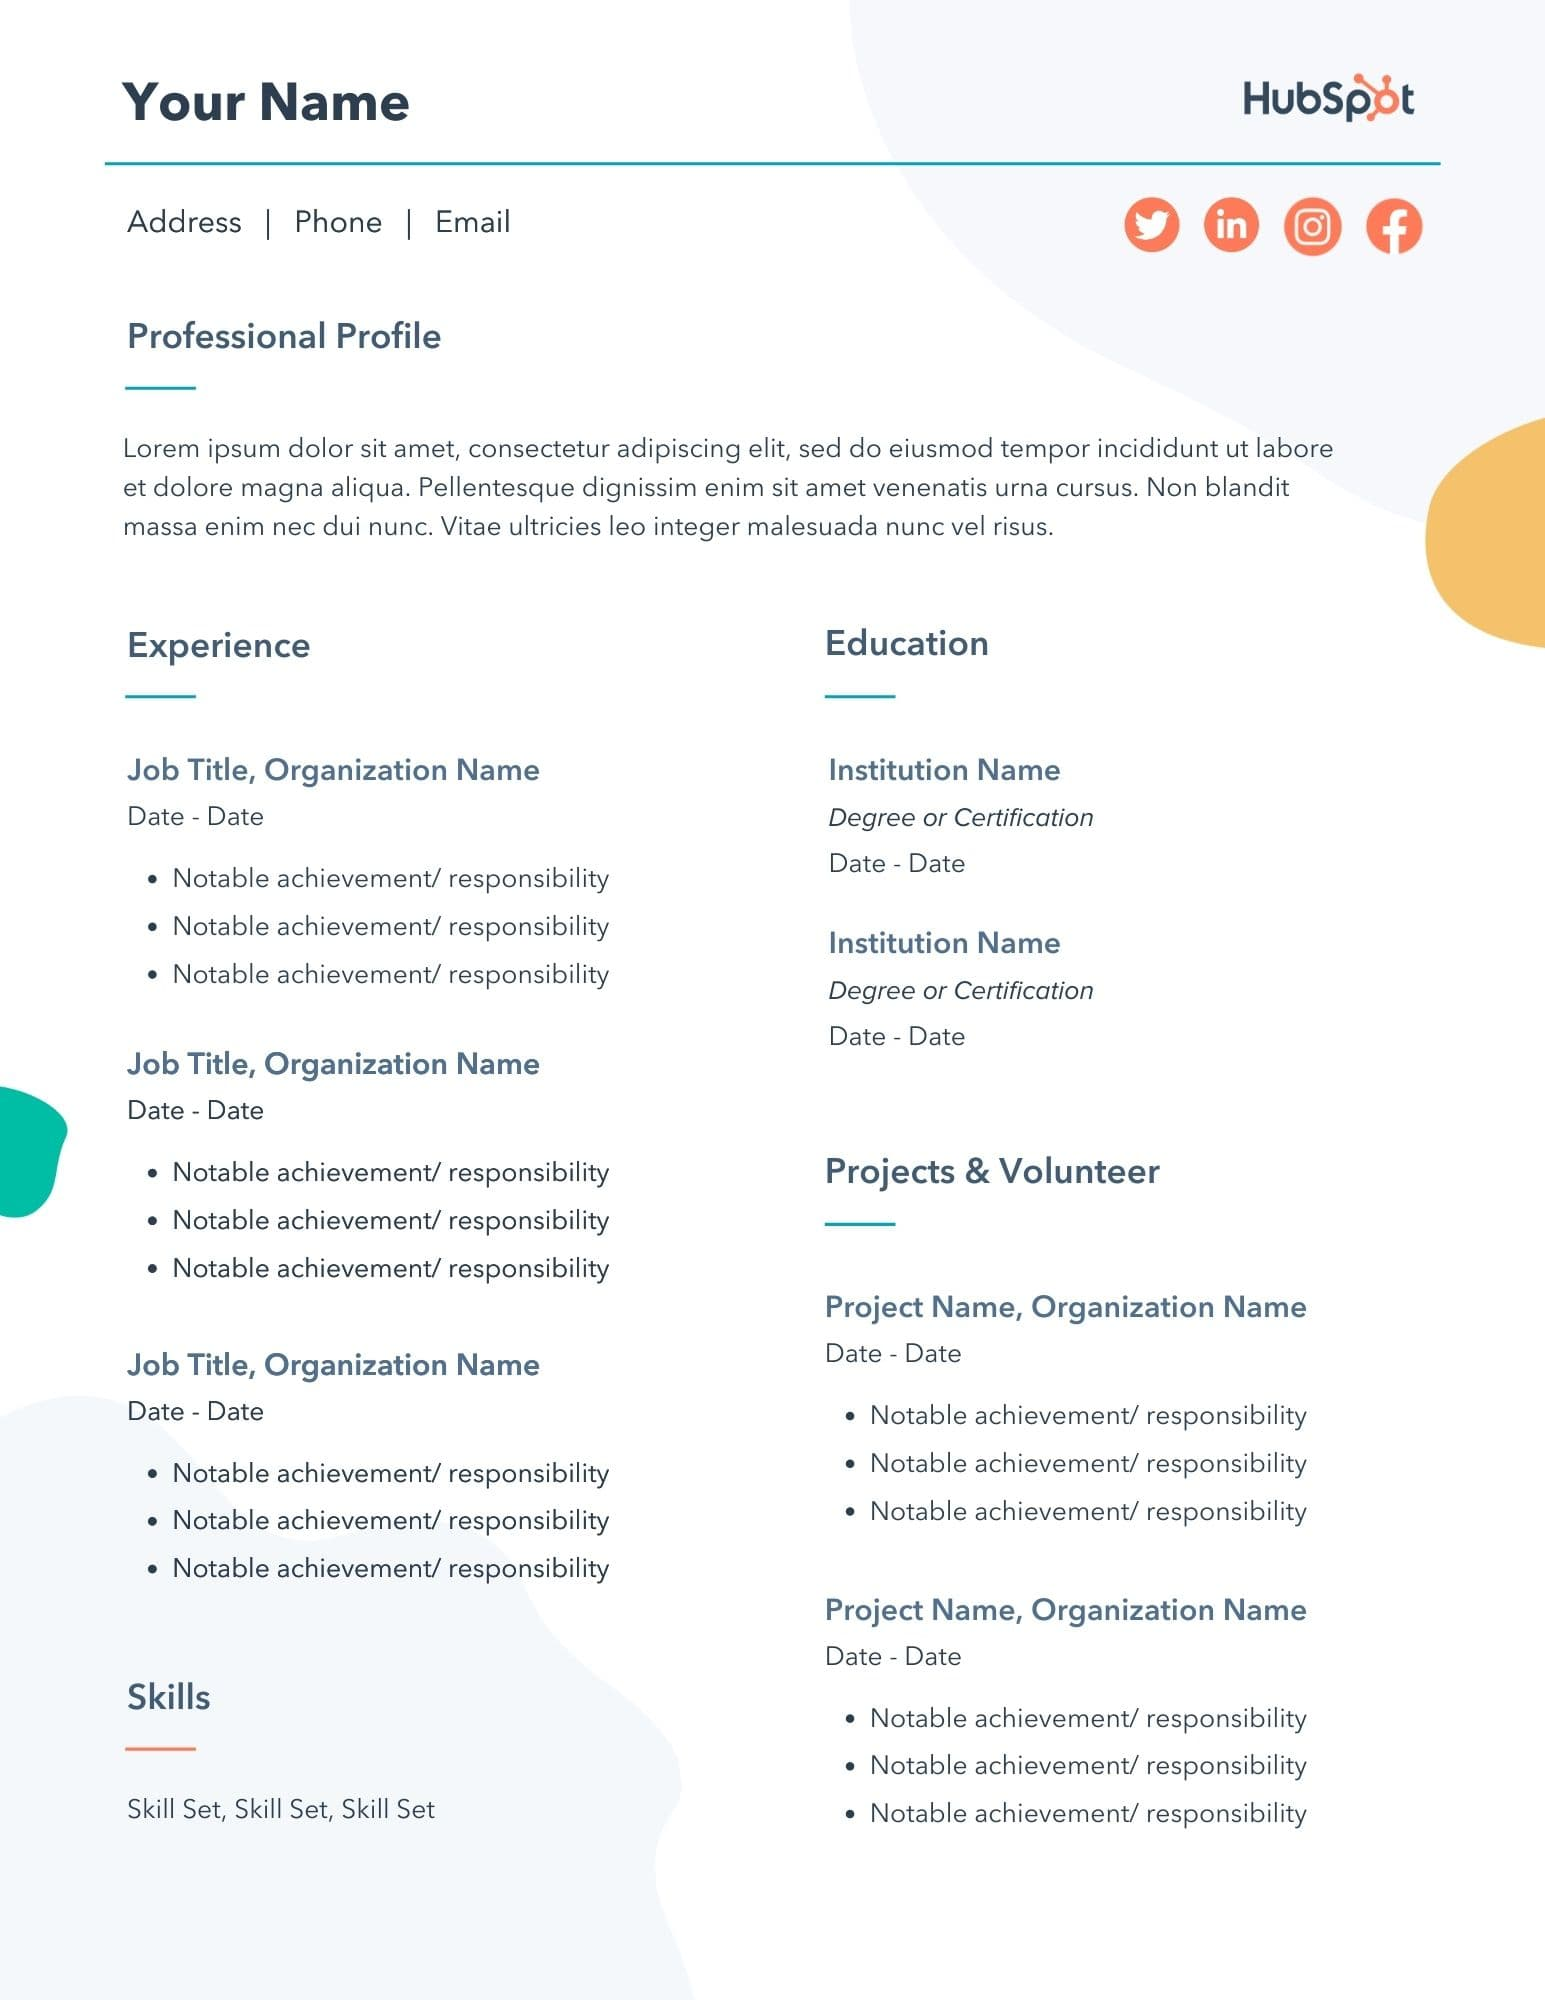 free resume templates for microsoft word to make your own simple full format template Resume Simple Full Resume Format